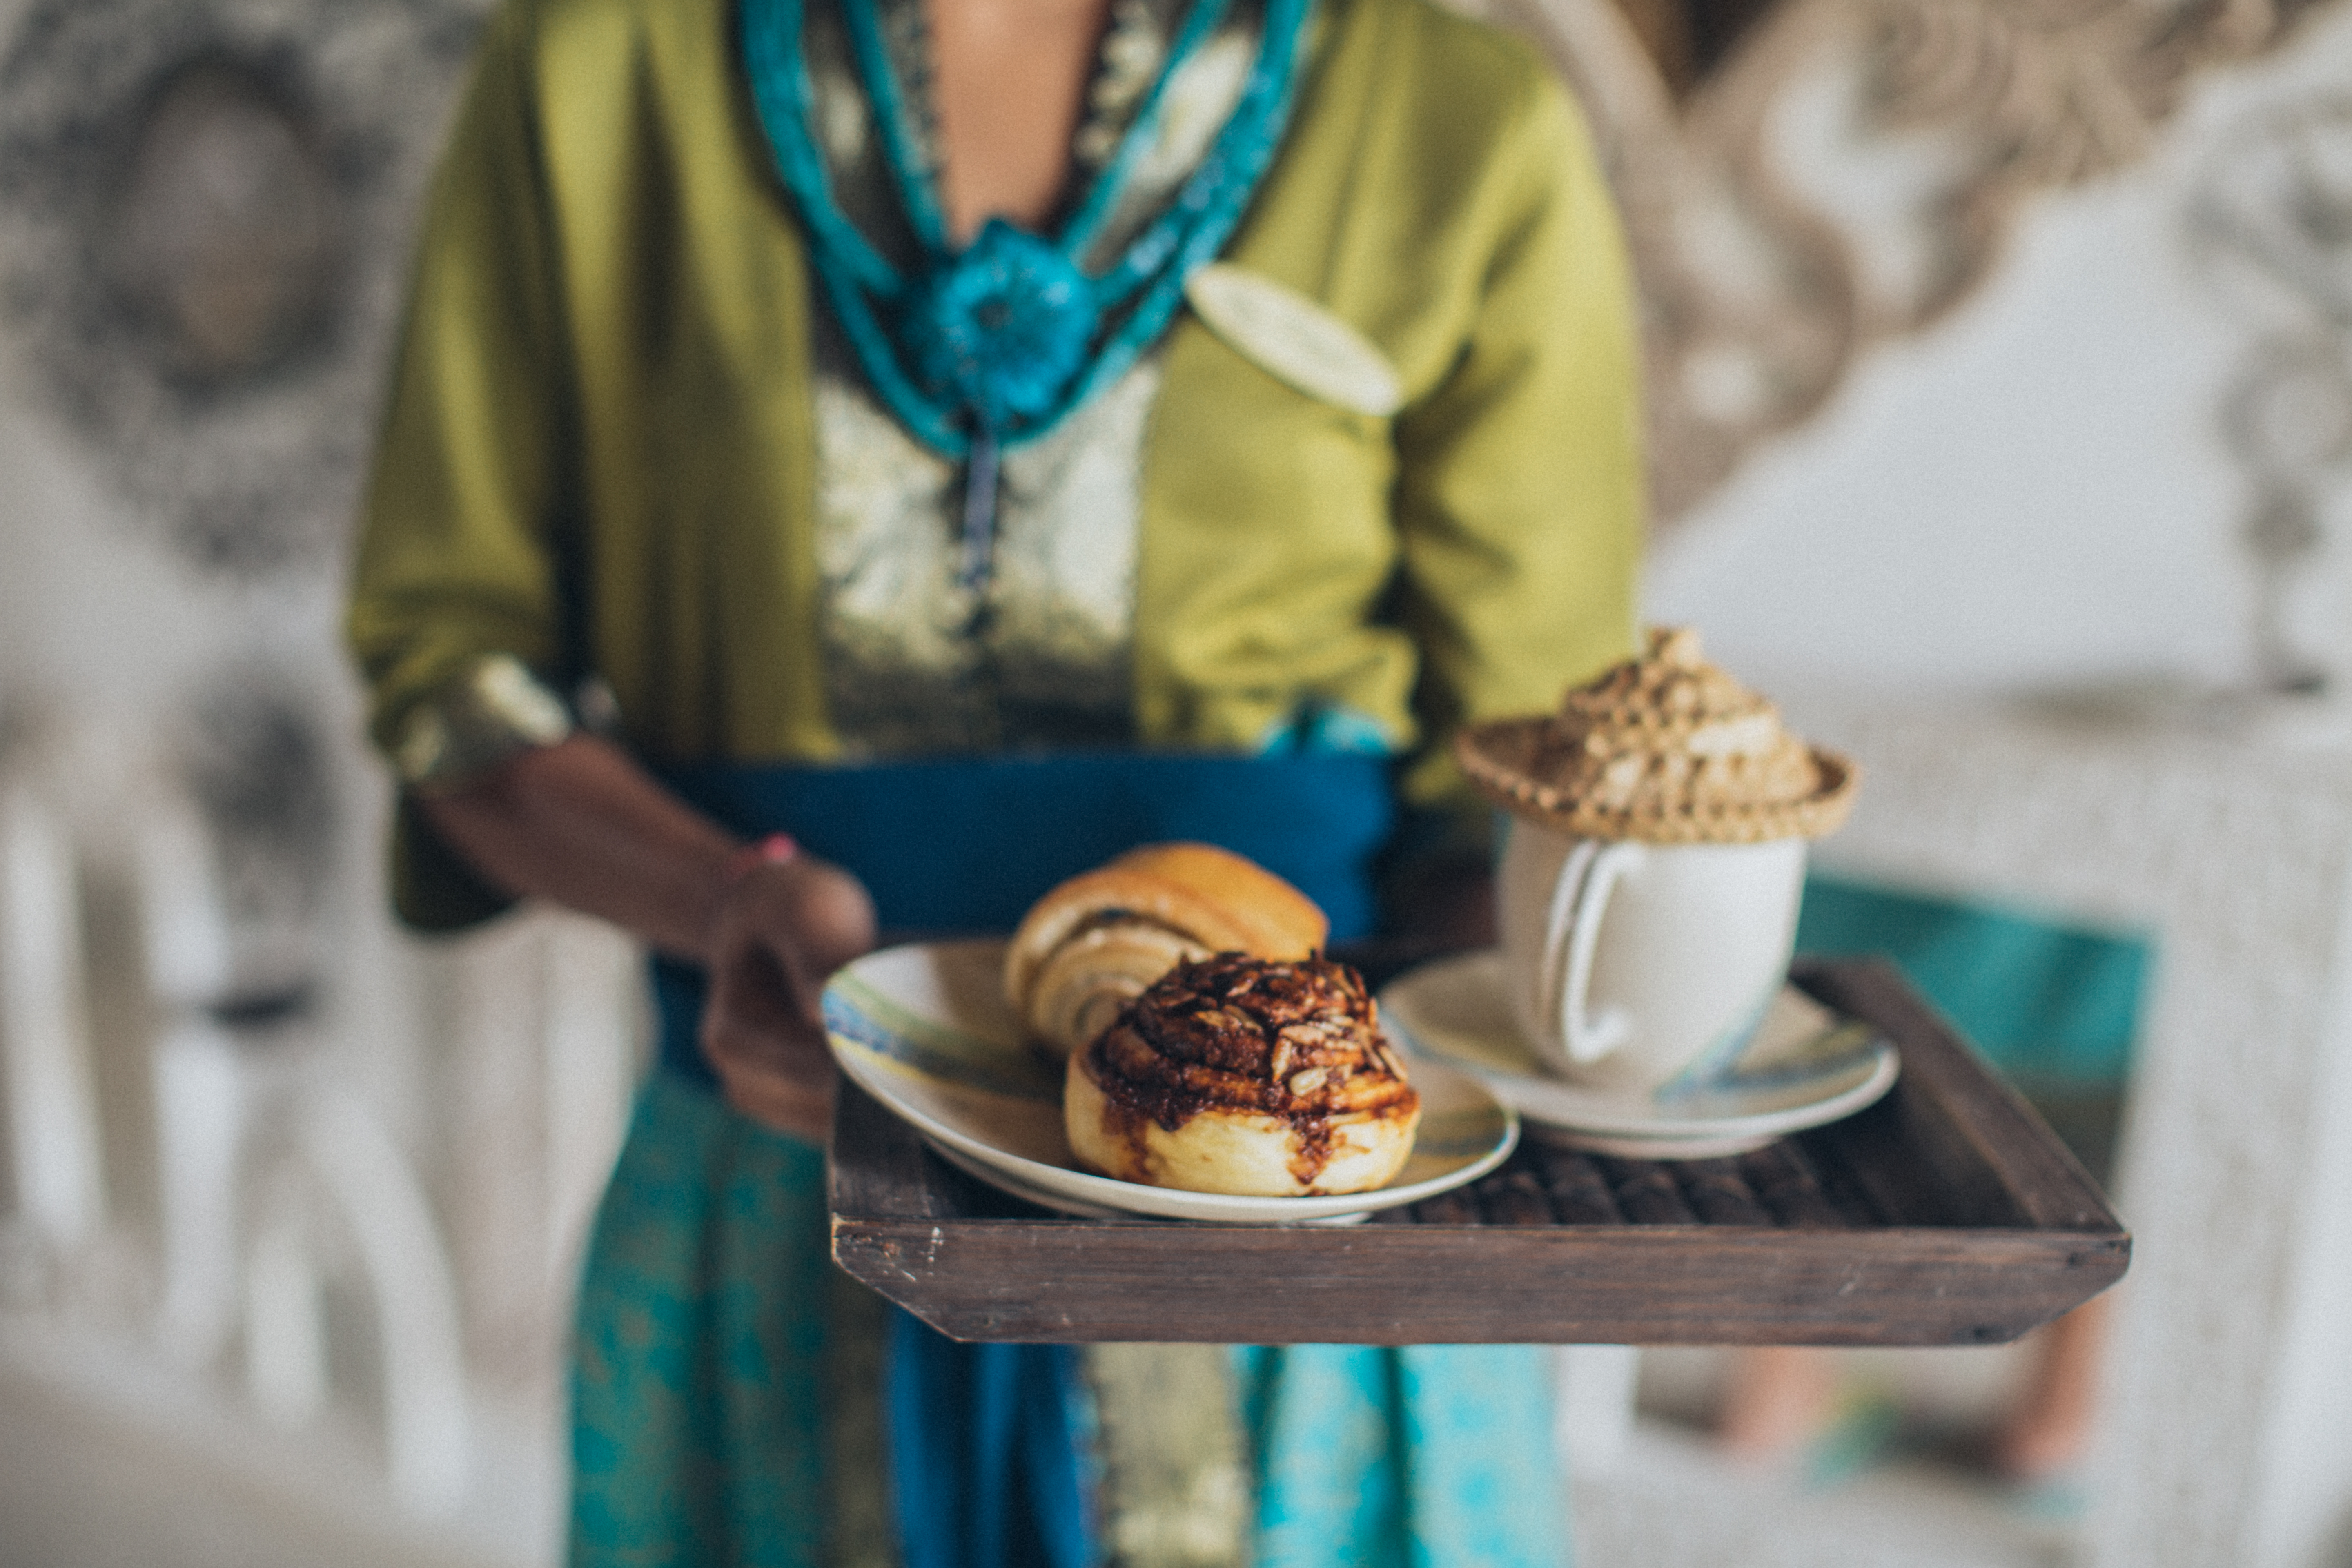 Woman Serving Plate of Cinnamon Breads and Cup of Beverage